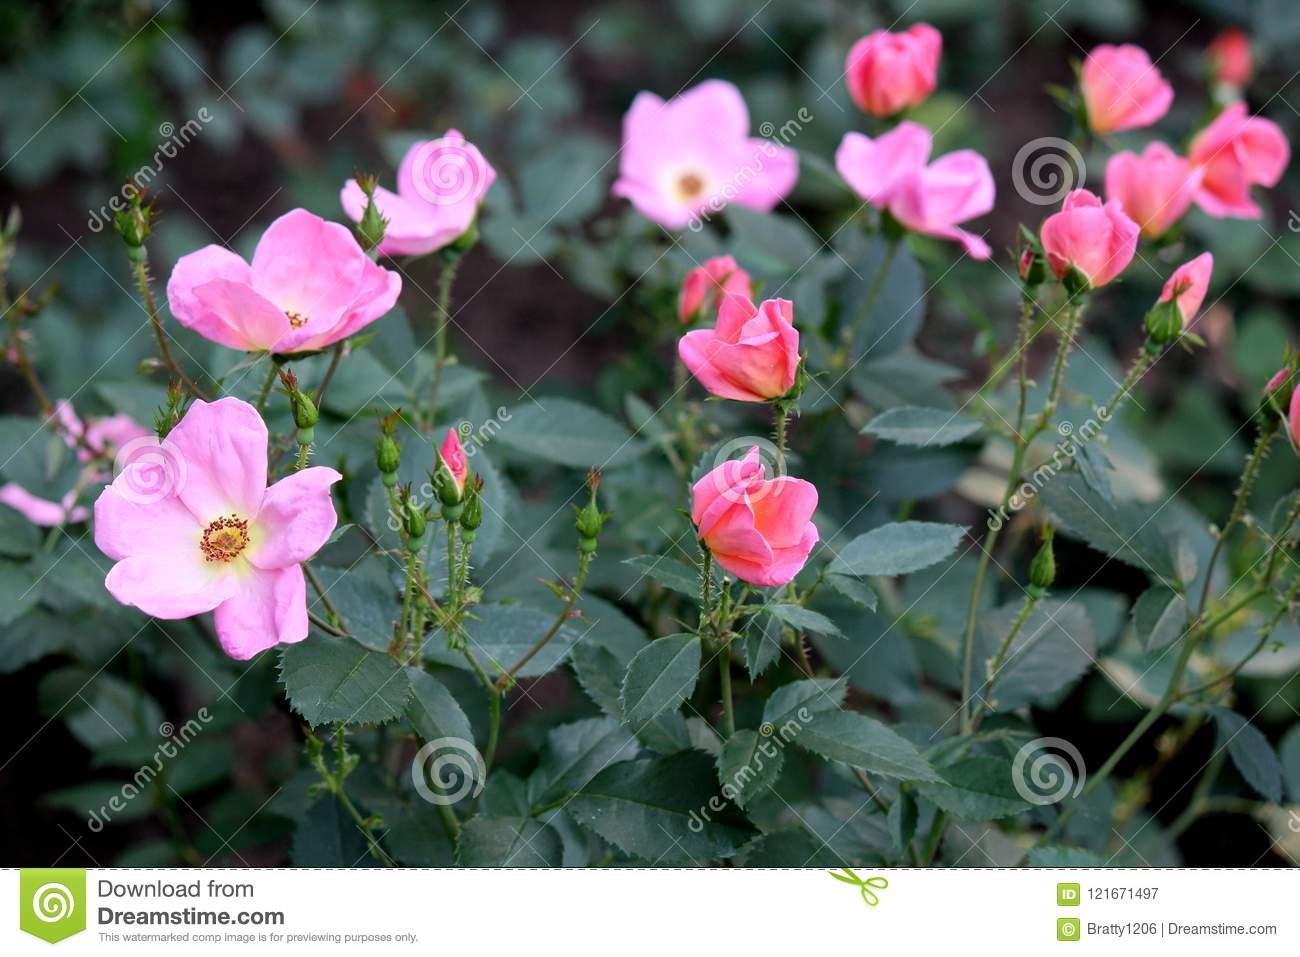 Dark Green Background Of Rose Bush Leaves With Bright Pink Flowers